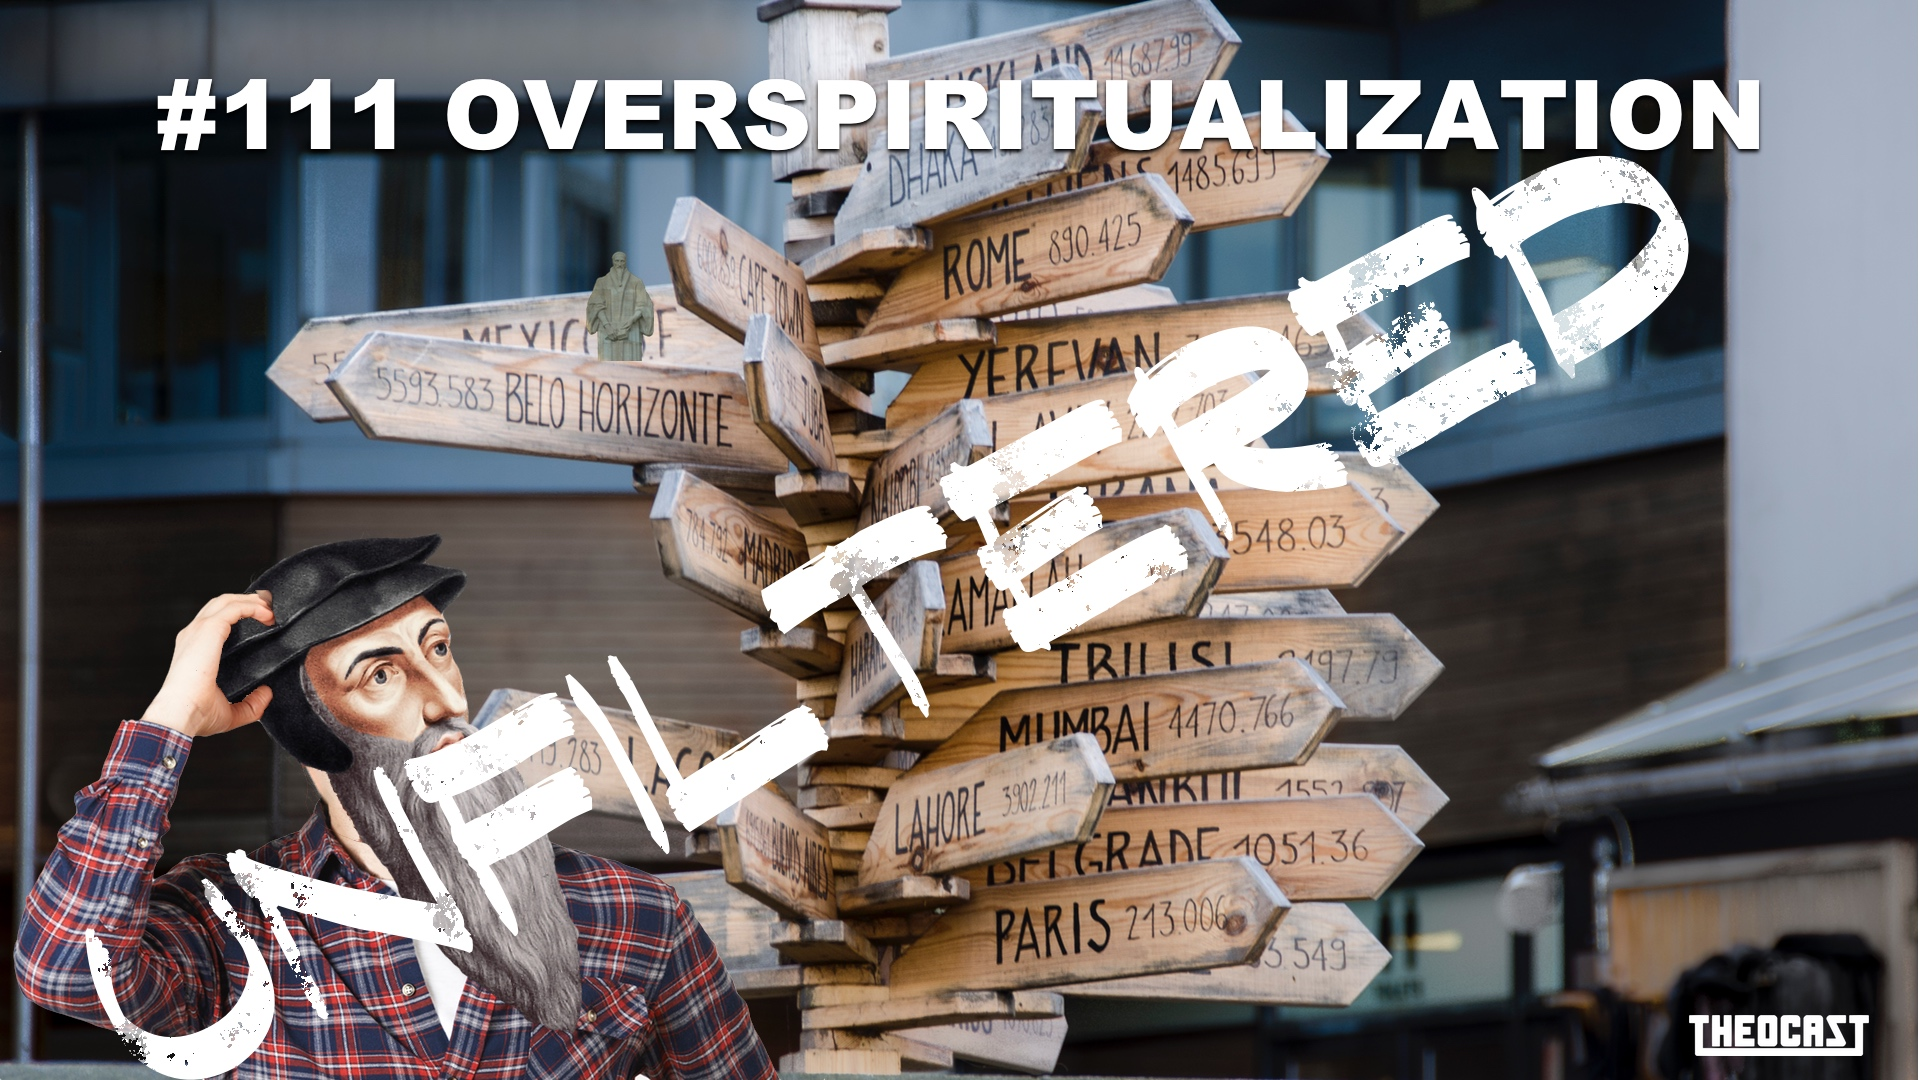 UNFILTERED #111 Overspiritualization